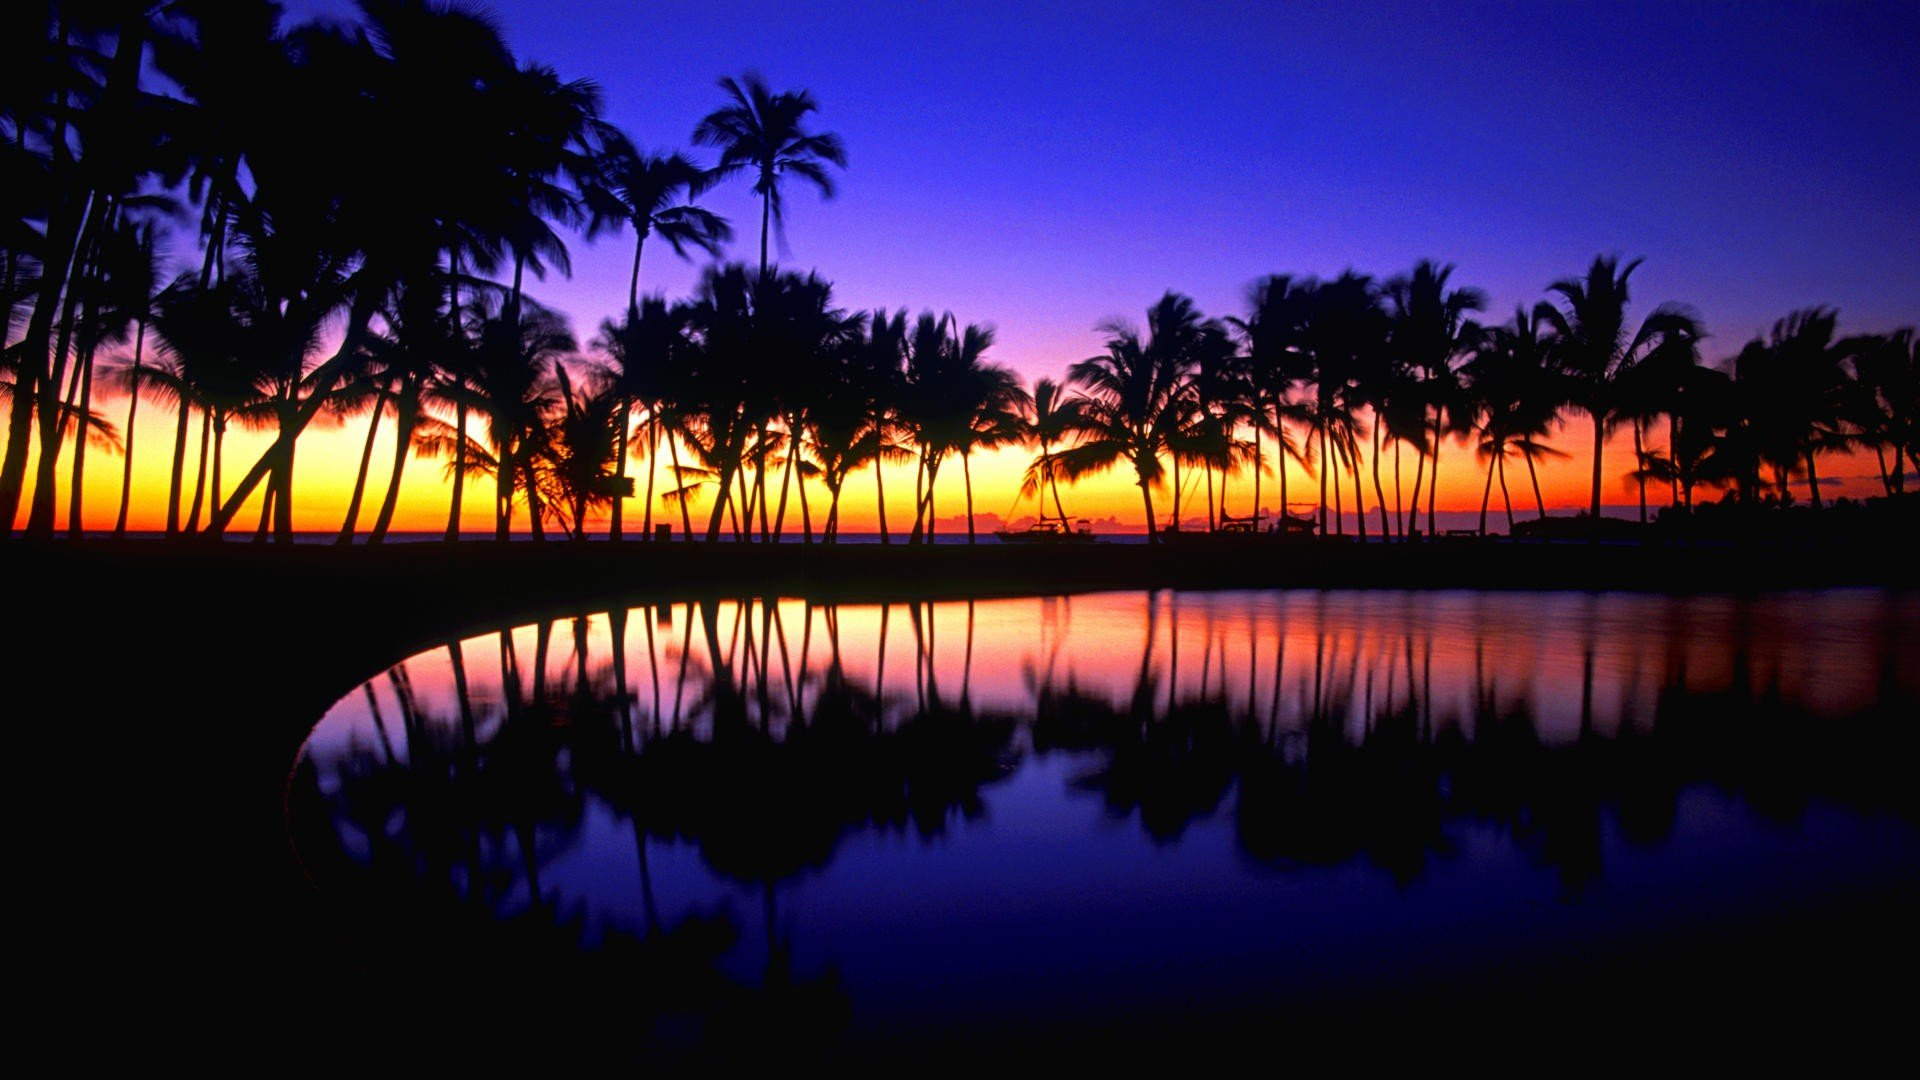 Hd Tropical Island Beach Paradise Wallpapers And Backgrounds: Tropical Desktop Wallpaper 1920x1080